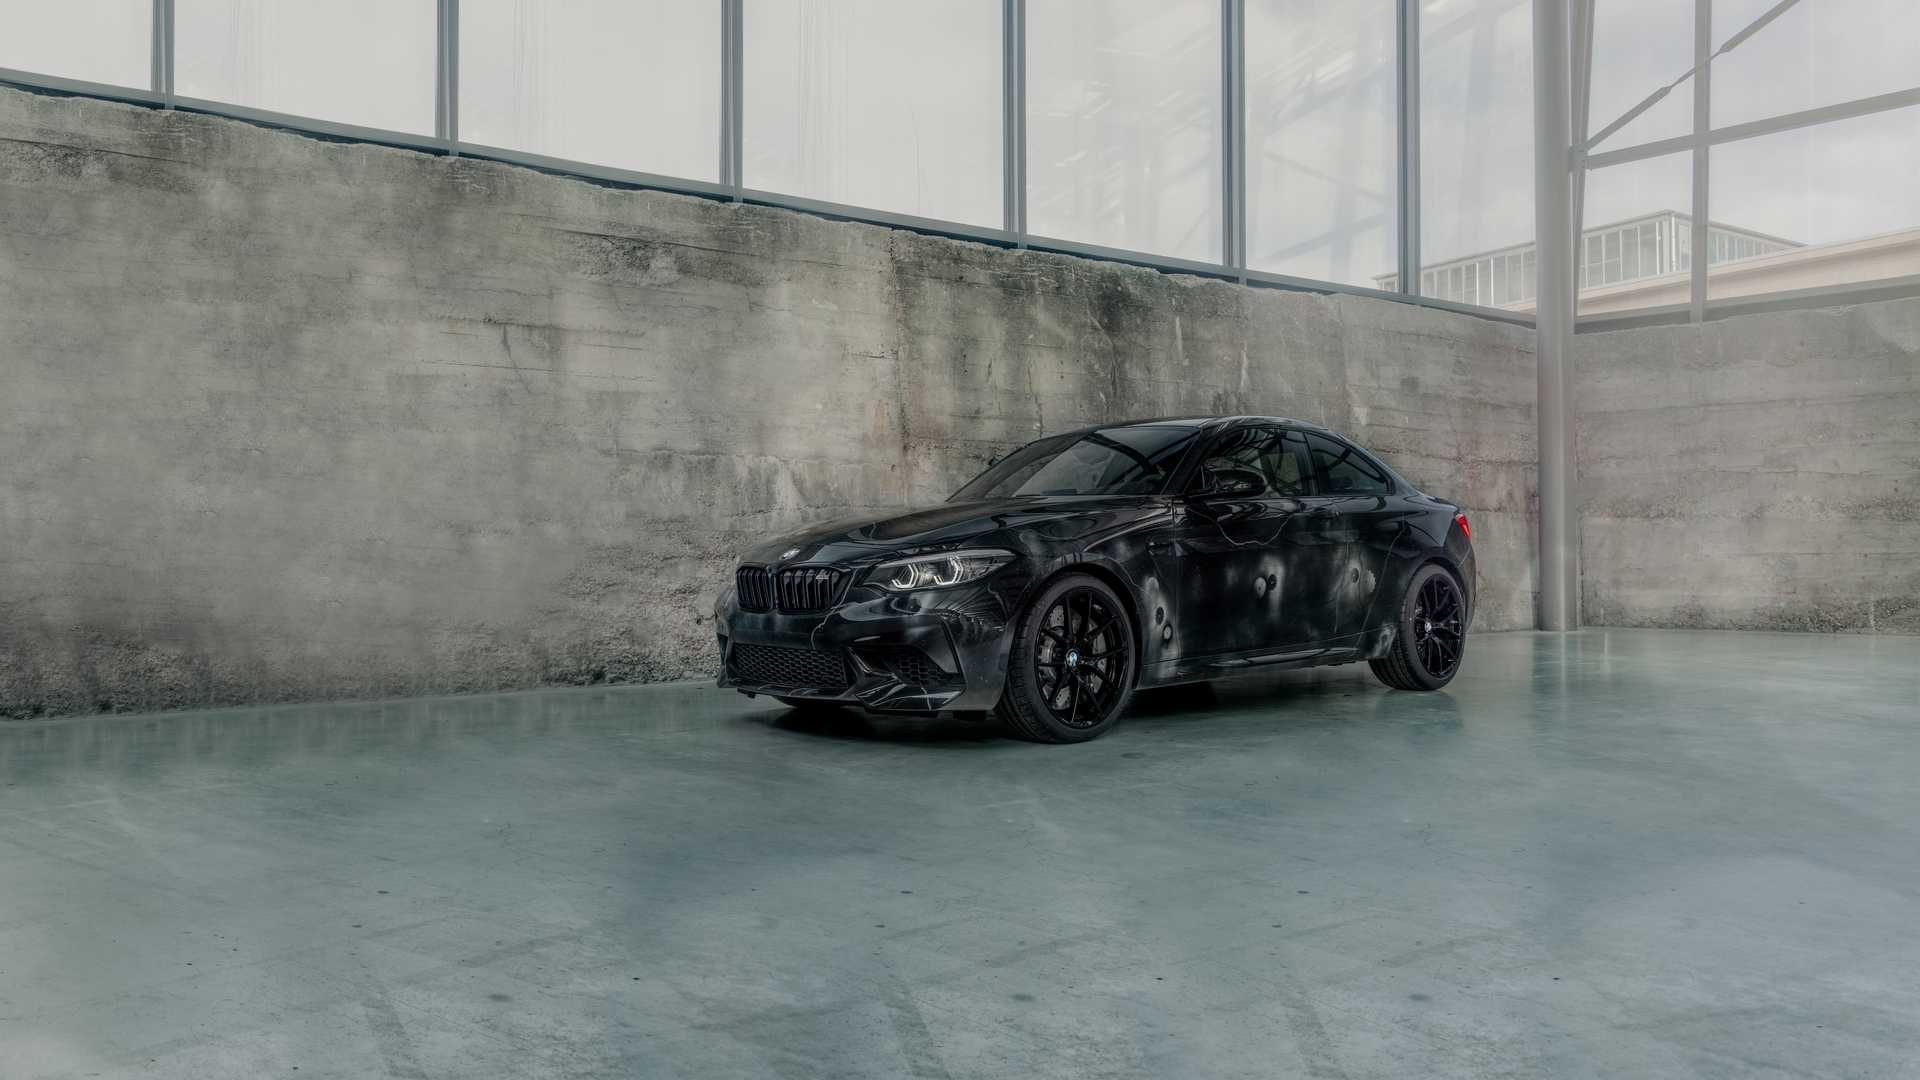 bmw-m2-competition-by-futura-2000-7